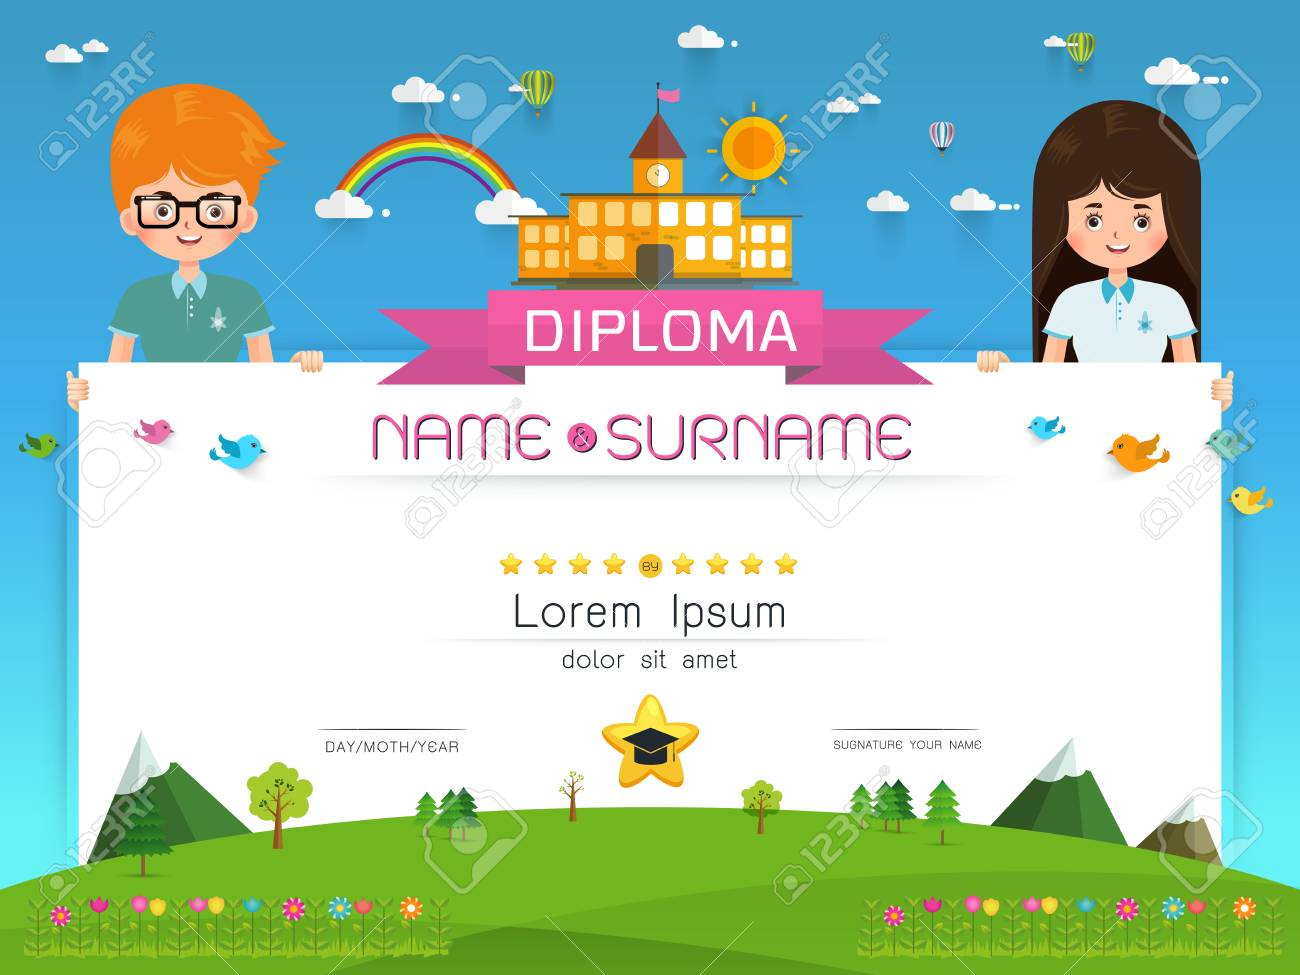 Certificate template for kids microsoft word flyer template free kids certificate templates free bank statement template student 84516535 certificate kids diploma kindergarten template layout background yadclub Gallery